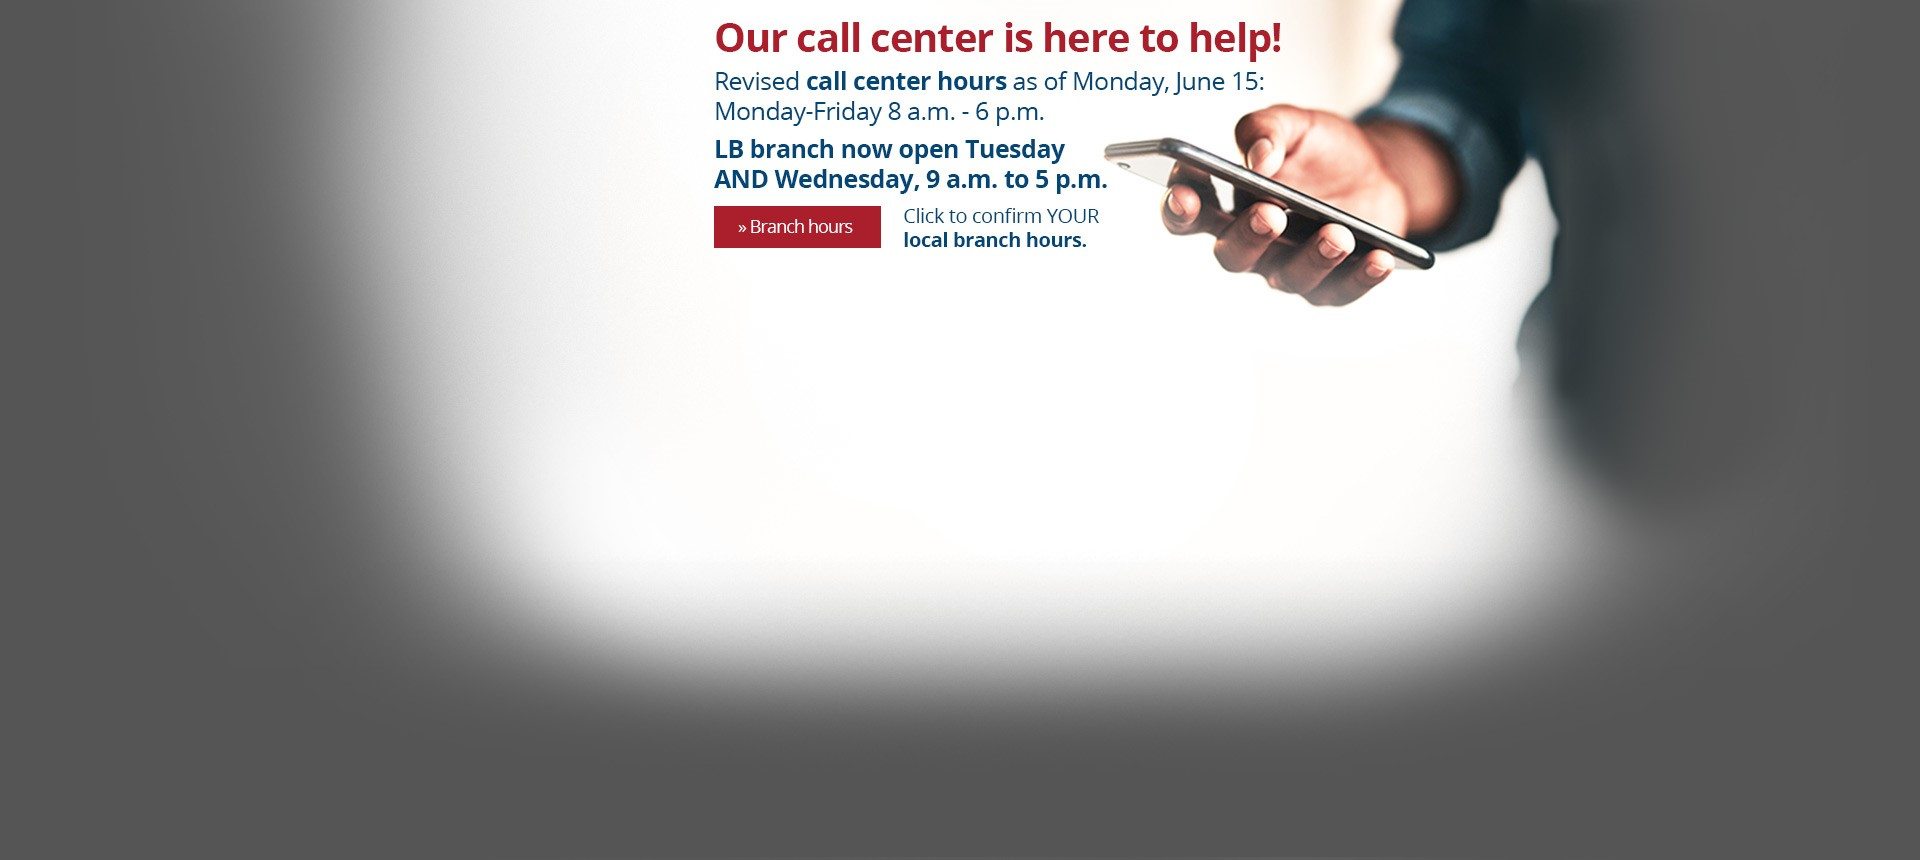 New expanded Call Center and Long Beach branch hours